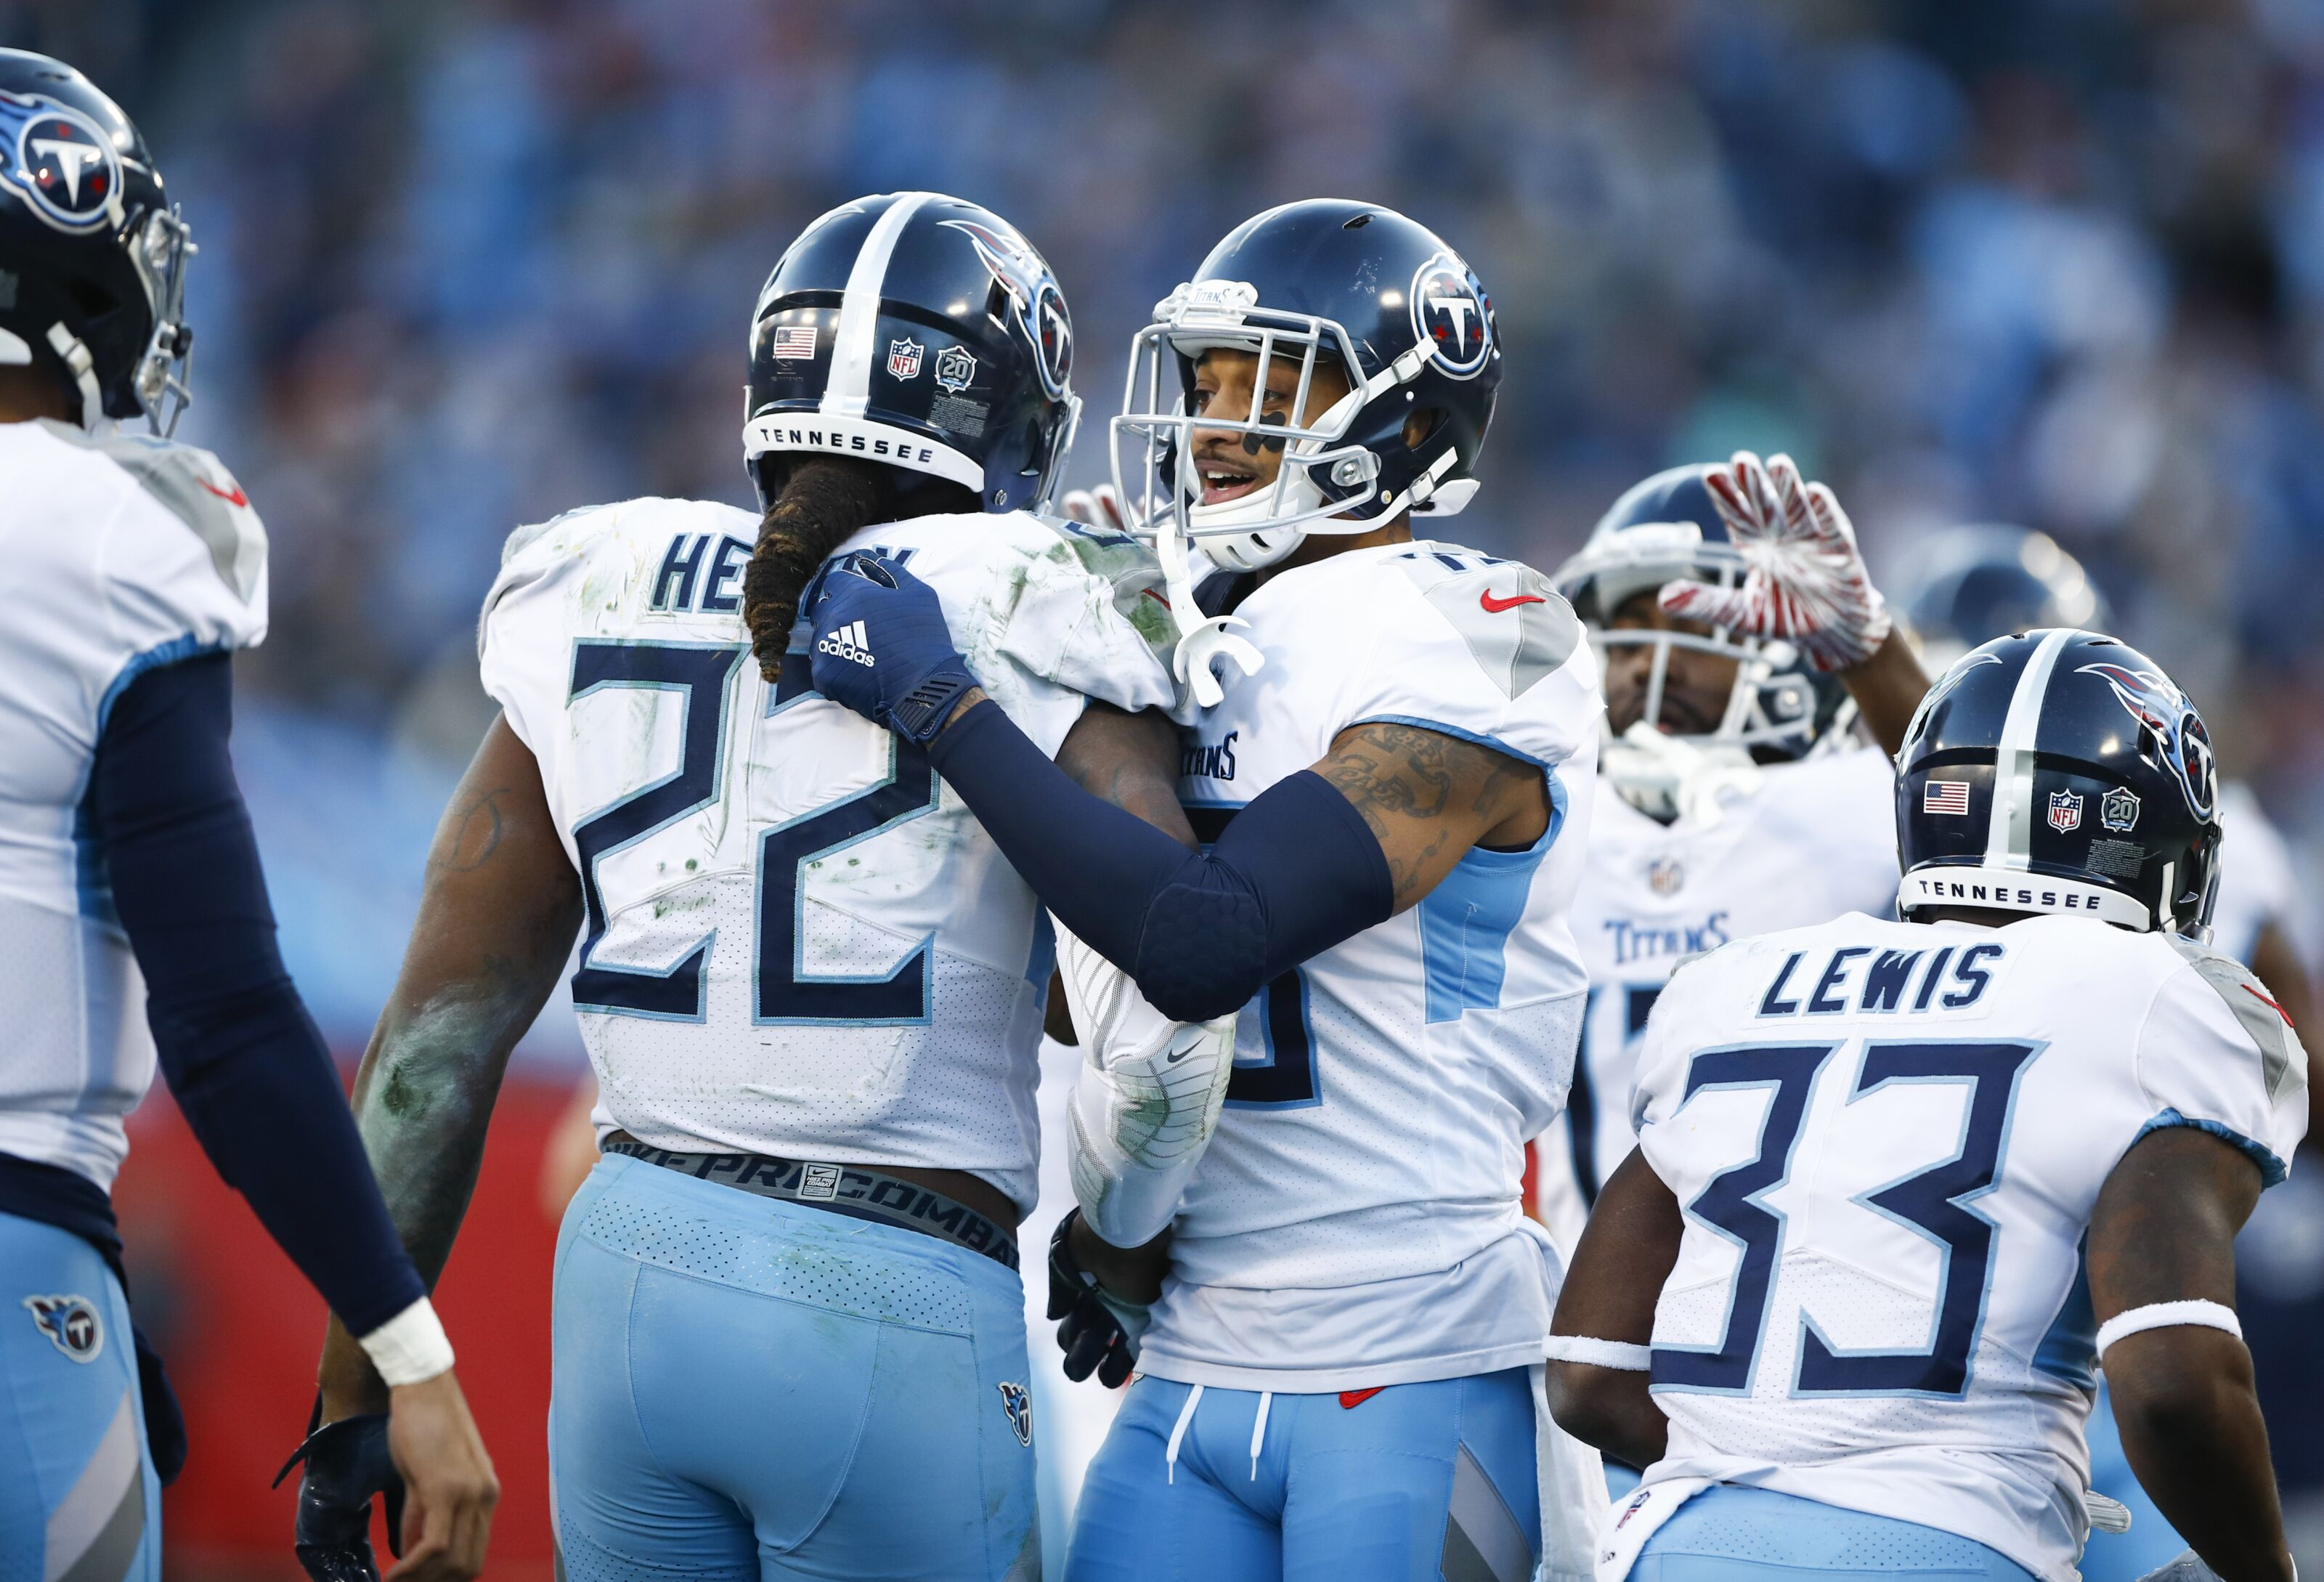 Tennessee Titans latest odds for 2019 NFL Playoffs released